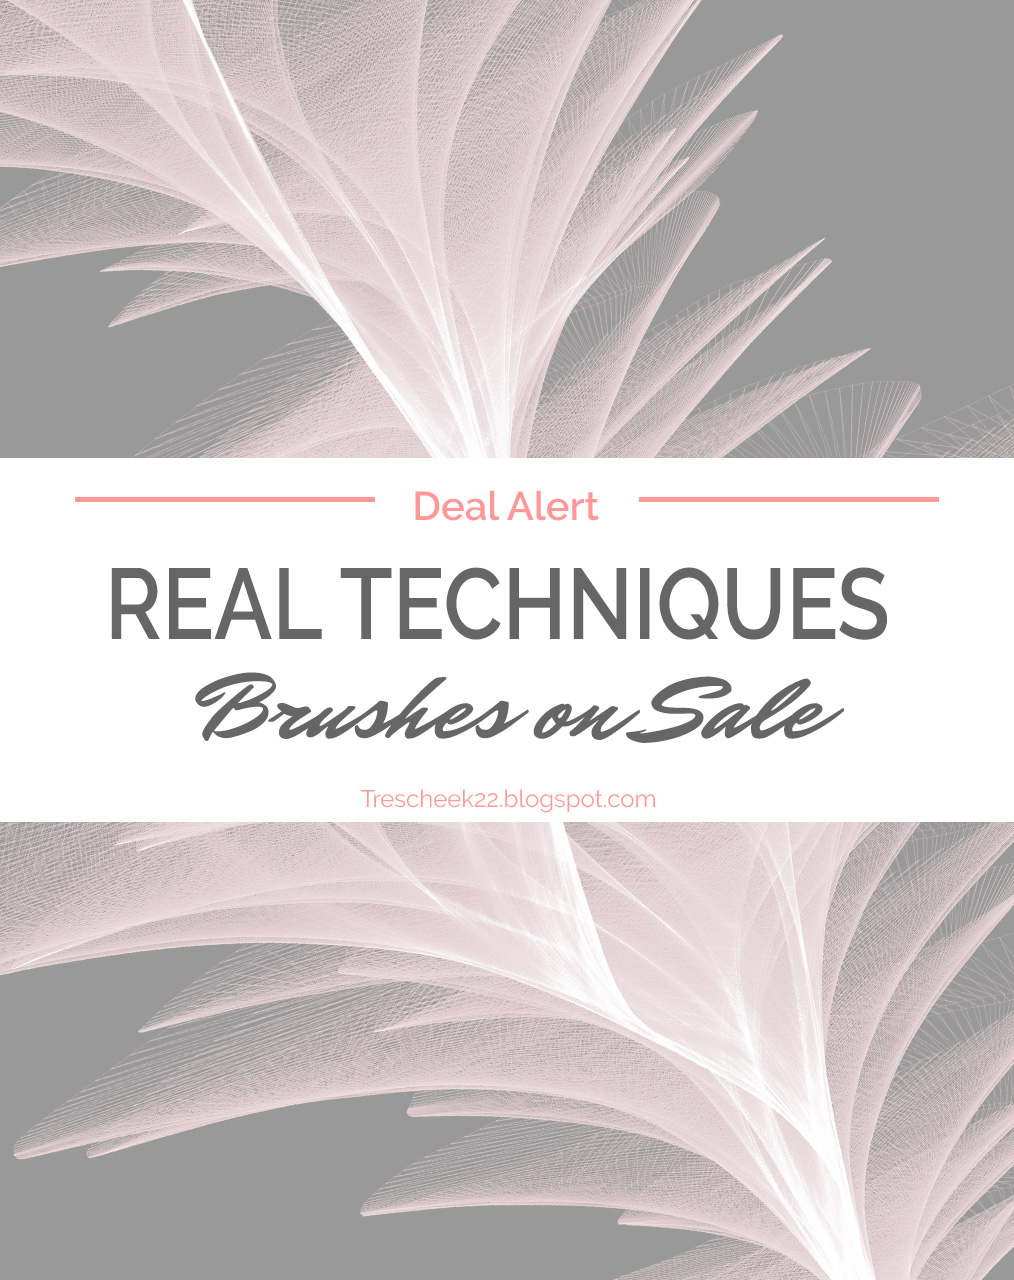 Deal Alert: Real Techniques Brush  Sale